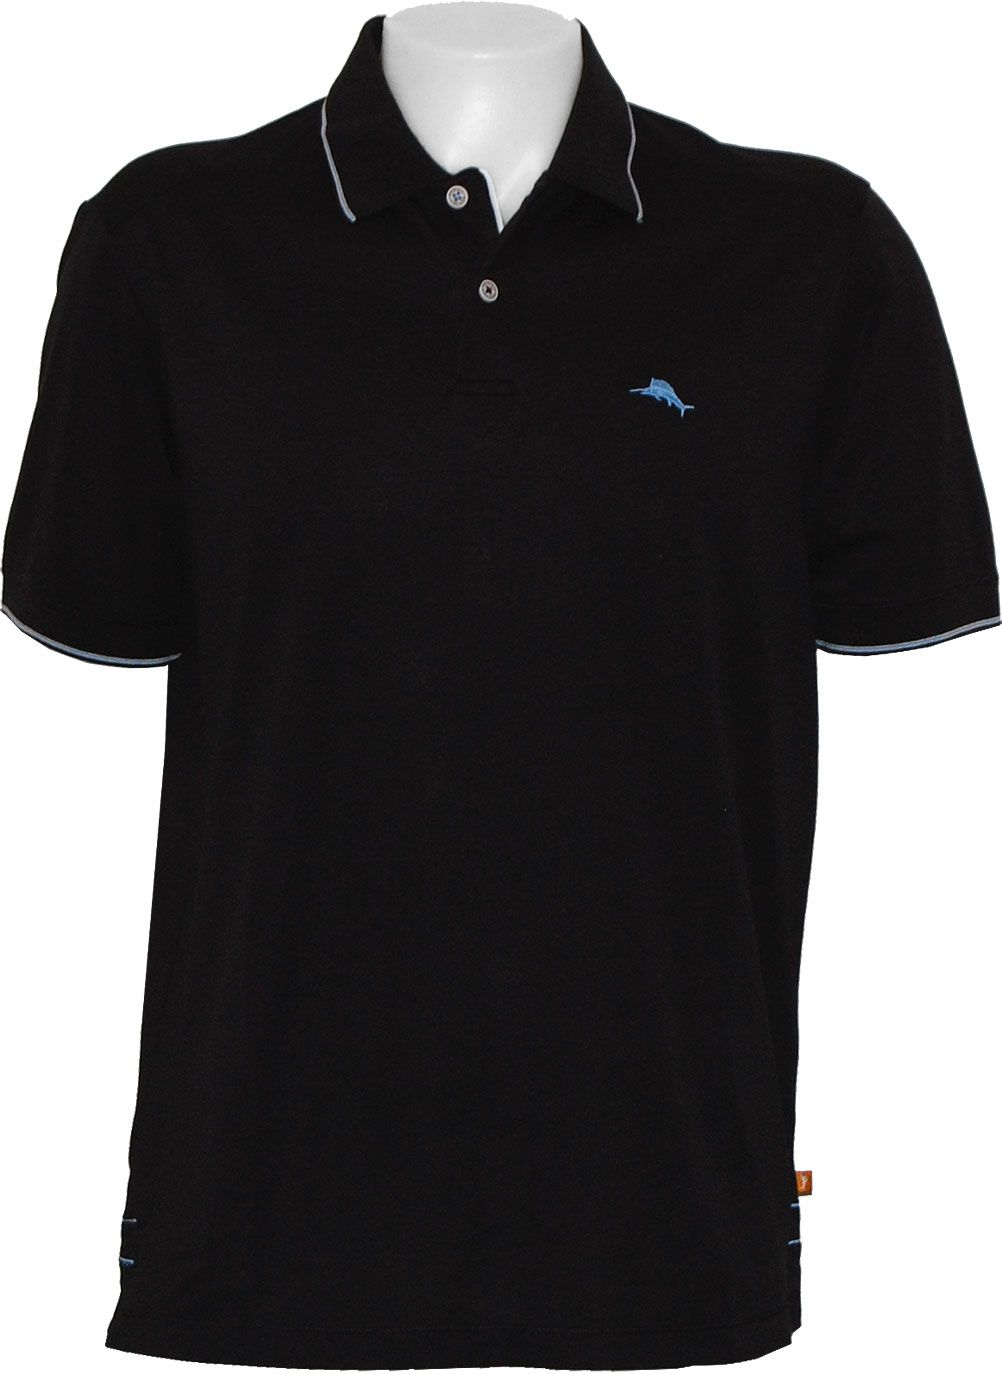 Tommy Bahama Island Lite Polo Polo Shirt in Black